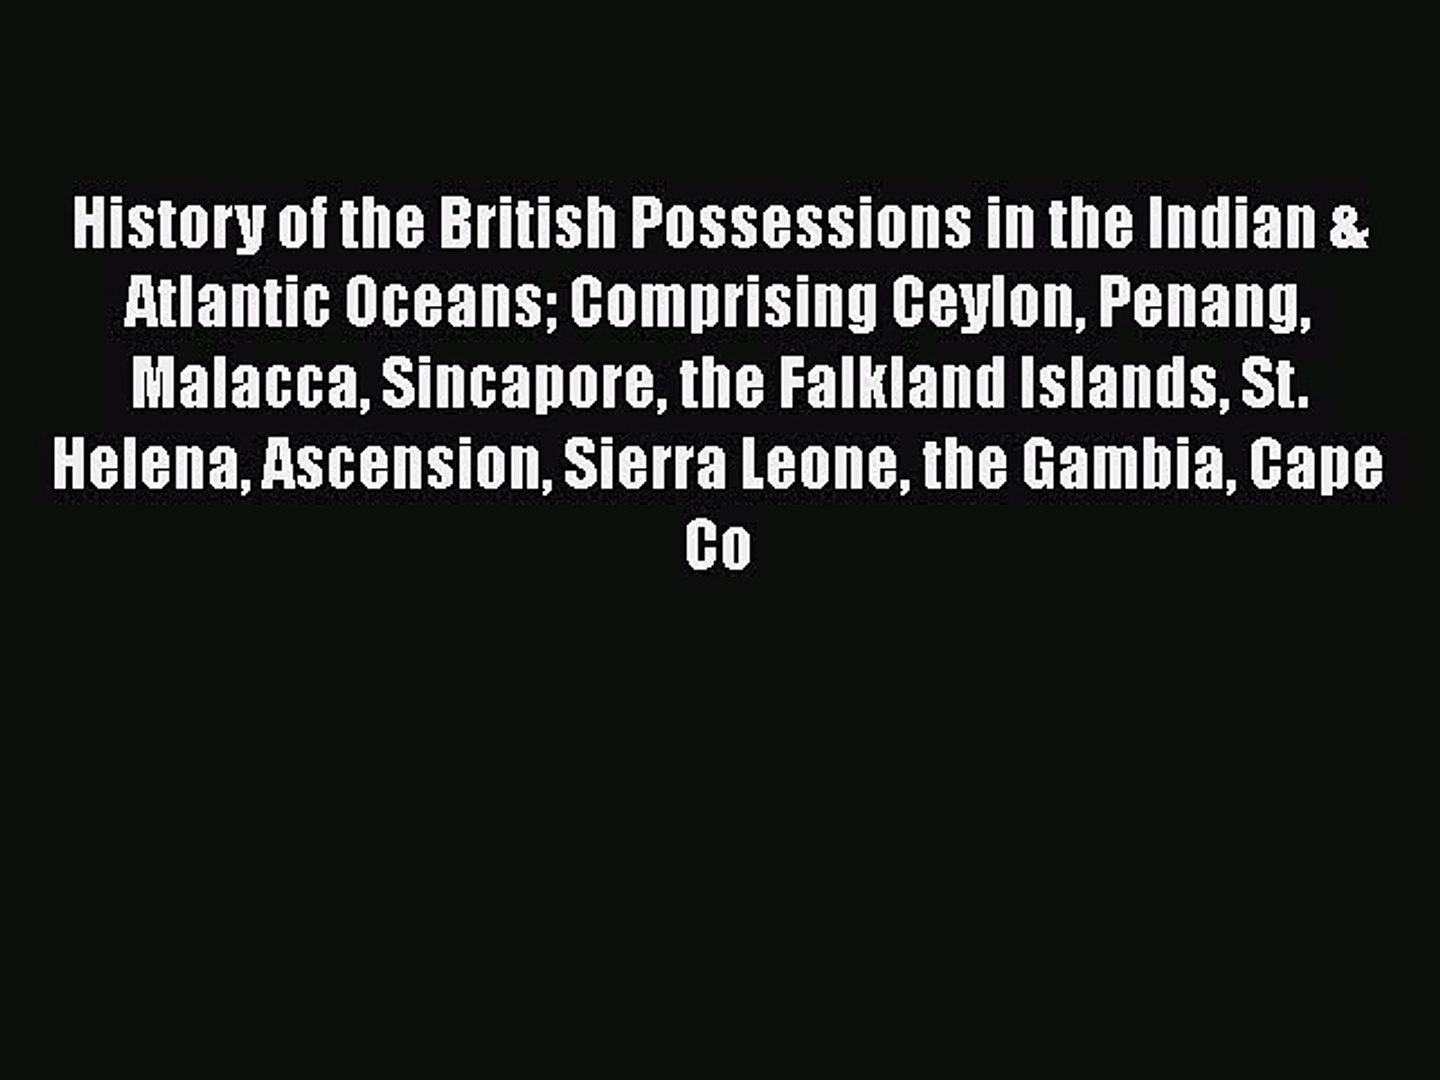 Read History of the British Possessions in the Indian & Atlantic Oceans: Comprising Ceylon